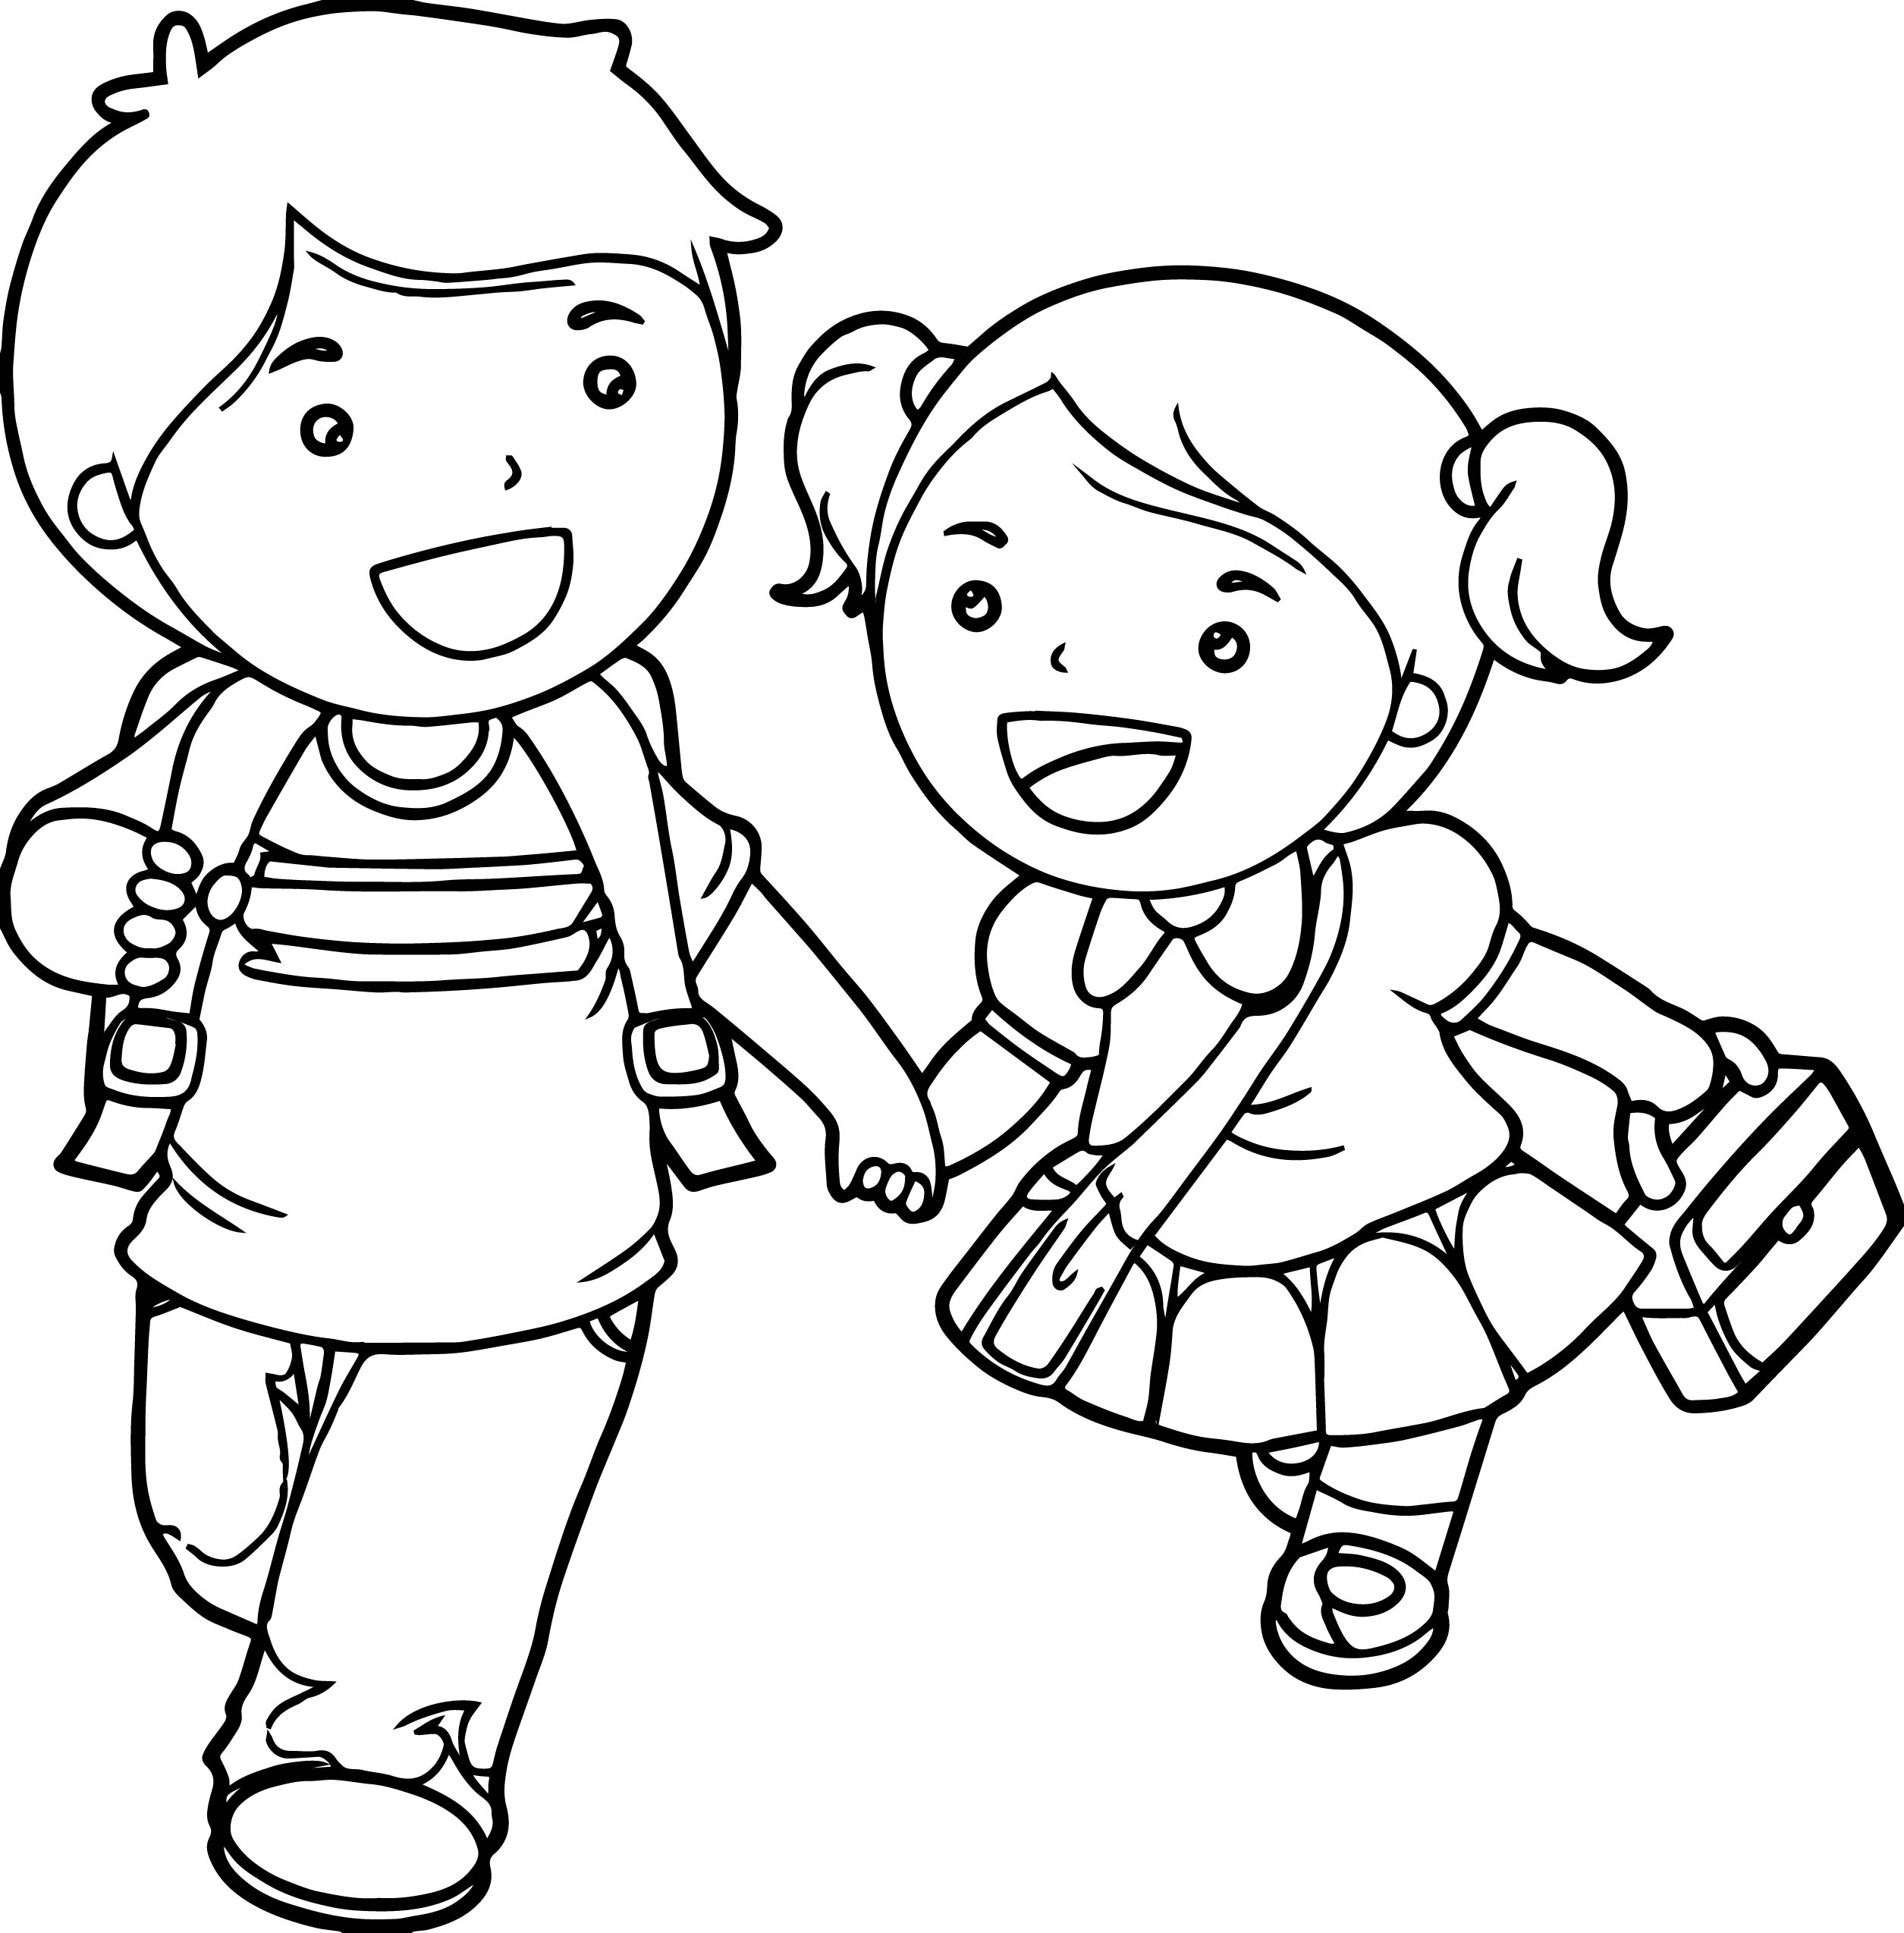 coloring sheet boy and girl children boys and a girl celebrating coloring page free and sheet boy girl coloring